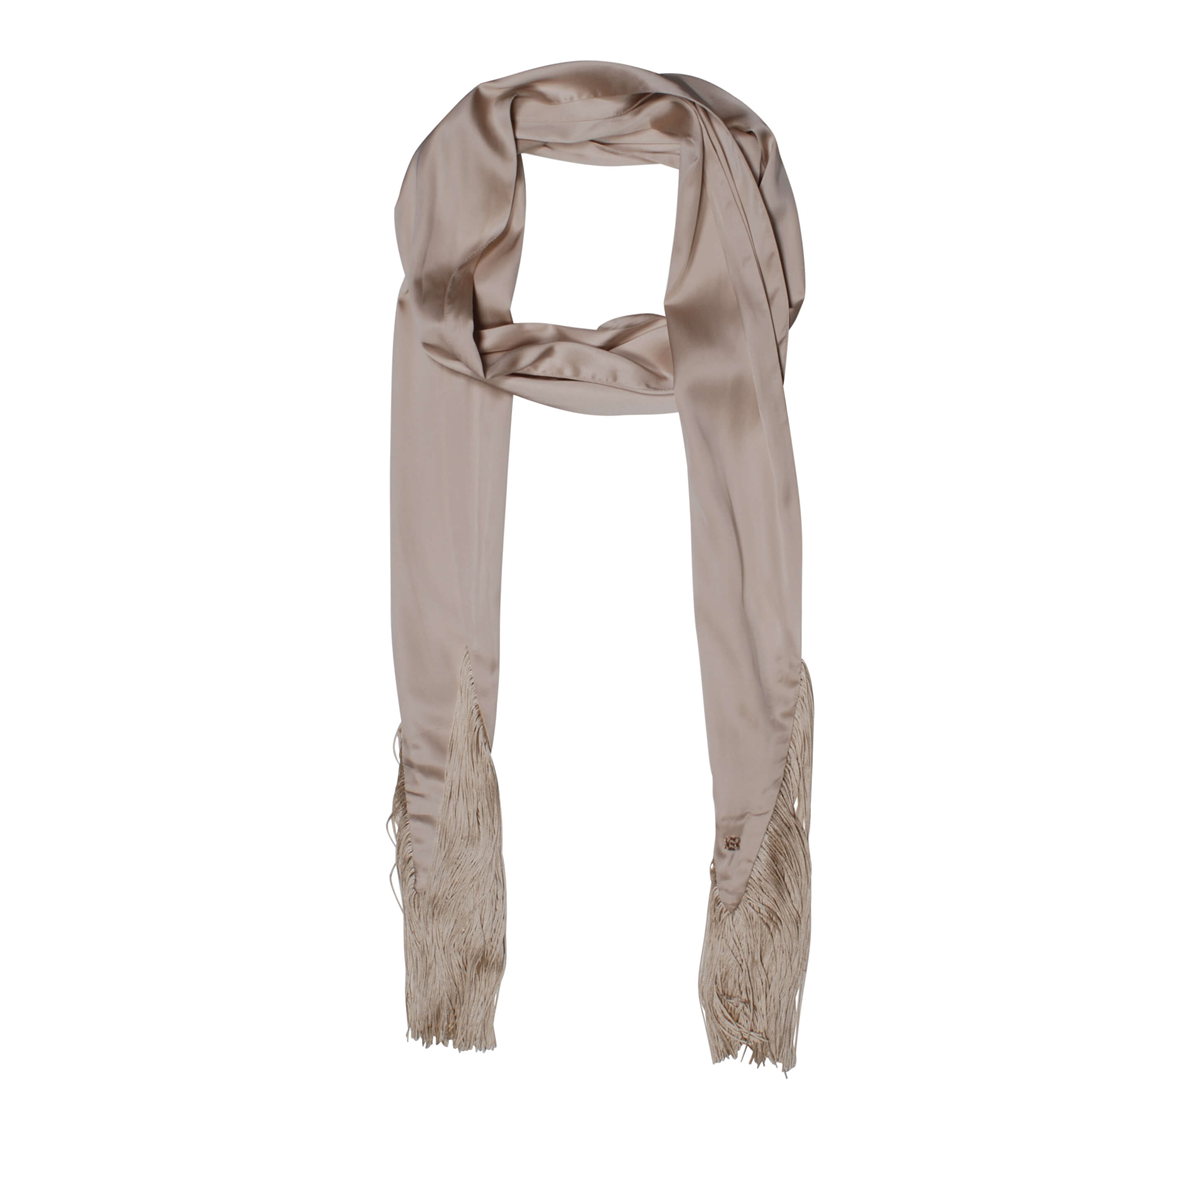 Va Gustav - Sjaal - Long scarf with fringes